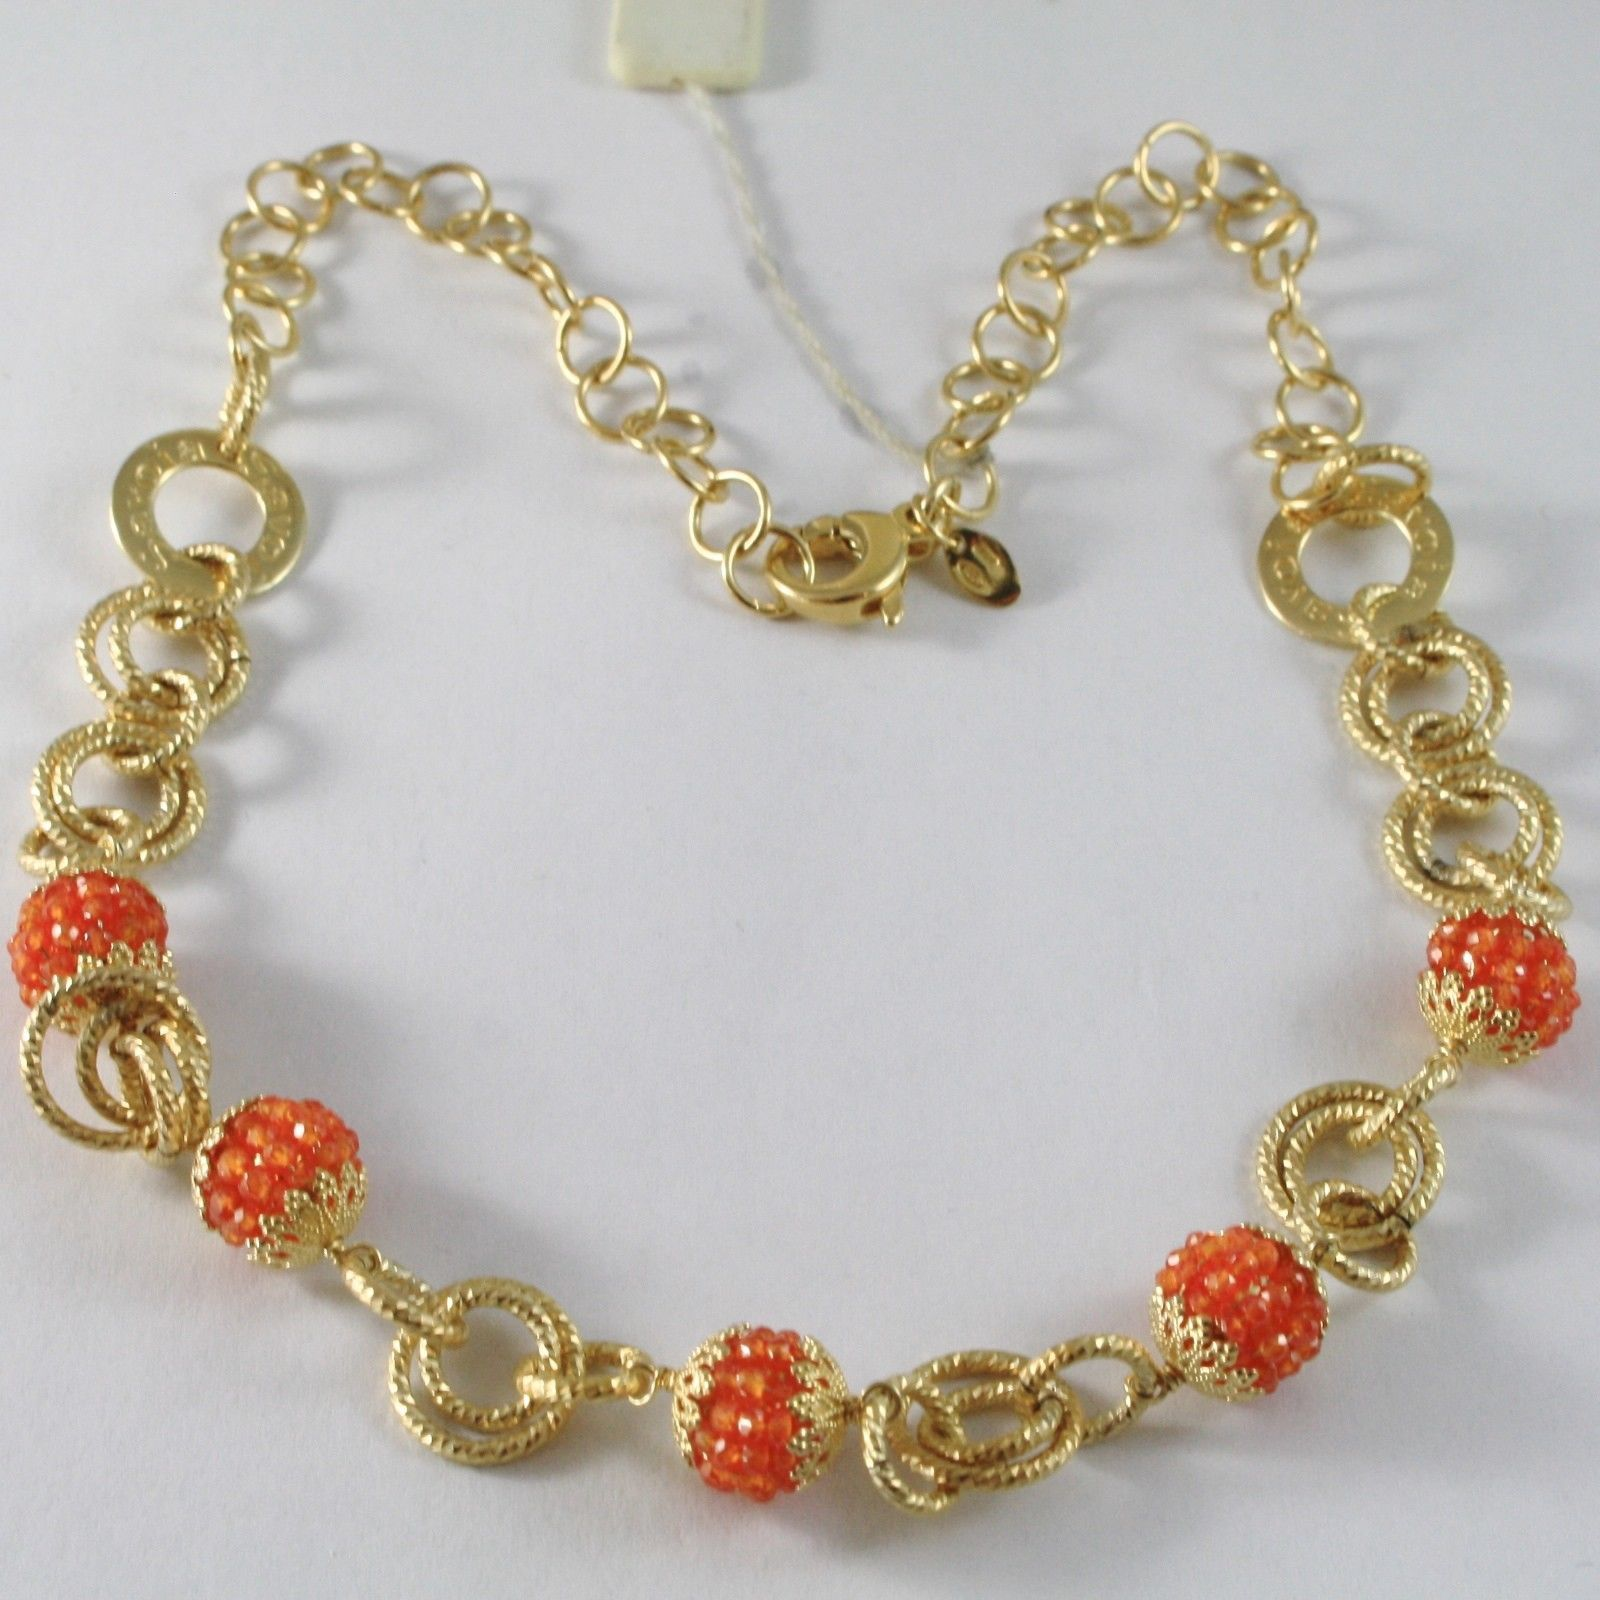 925 STERLING SILVER NECKLACE WITH CARNELIAN FINELY WORKED BALLS & CIRCLES, ITALY